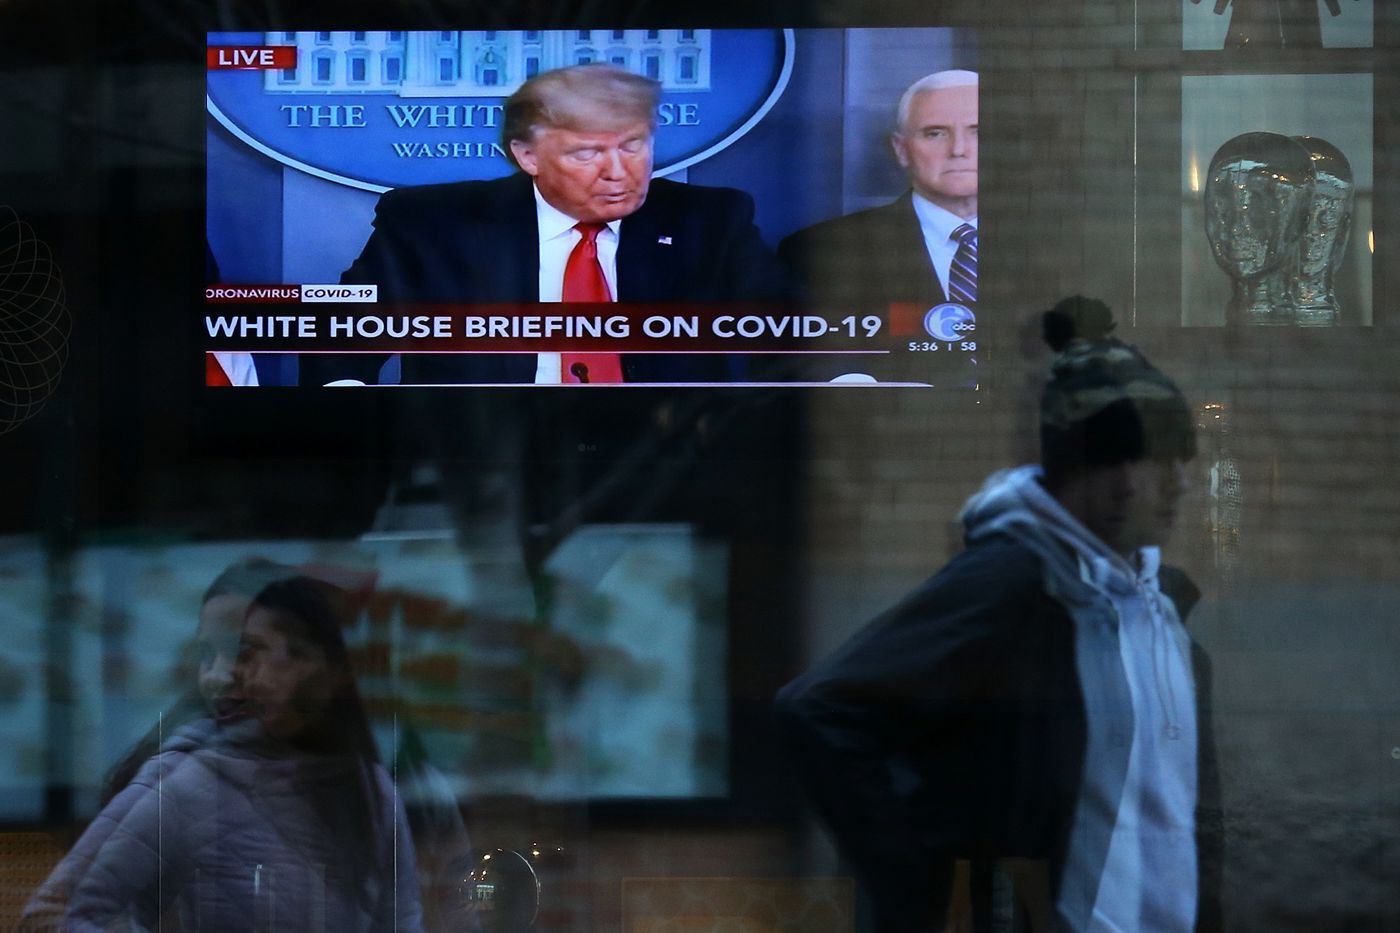 President Donald Trump is pictured on a television screen inside the Home2 Suites in Center City as he speaks during a coronavirus press briefing on Thursday. The U.S. on Thursday became the country with the most confirmed cases of the coronavirus.